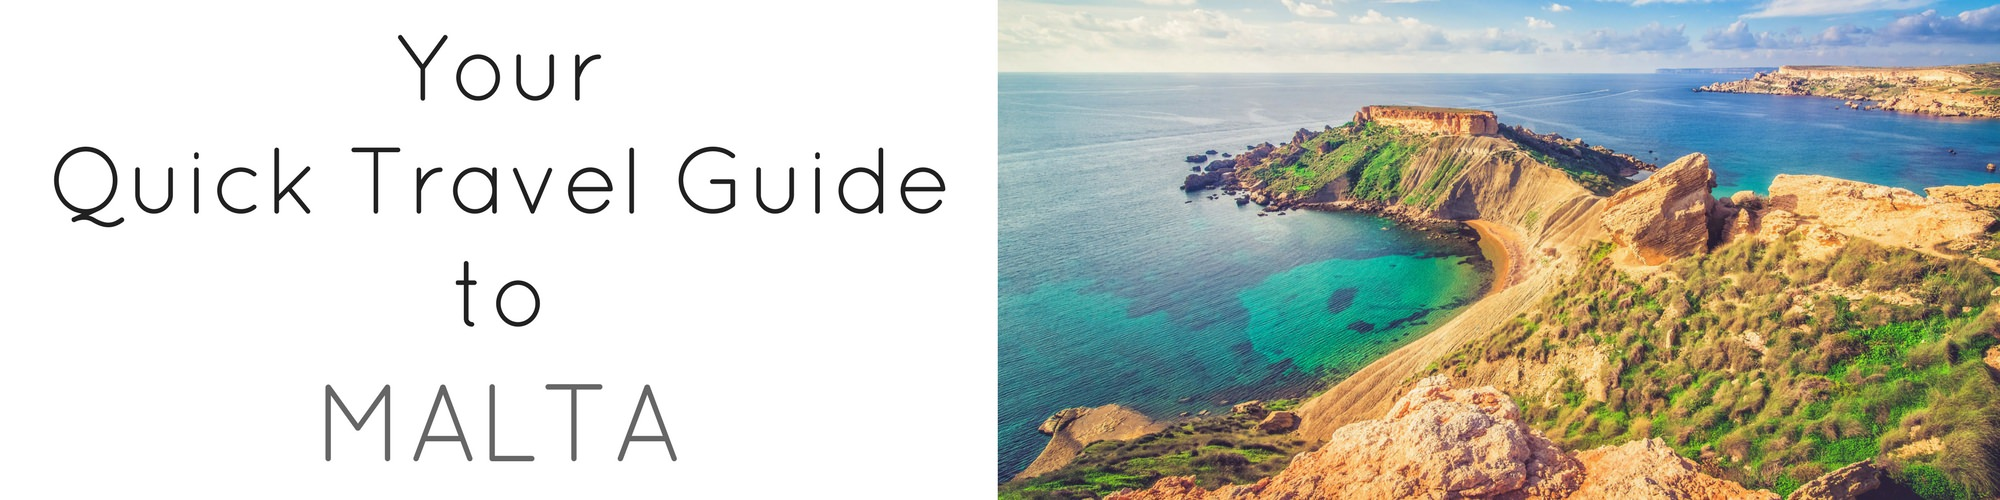 Quick Travel Guide to Malta